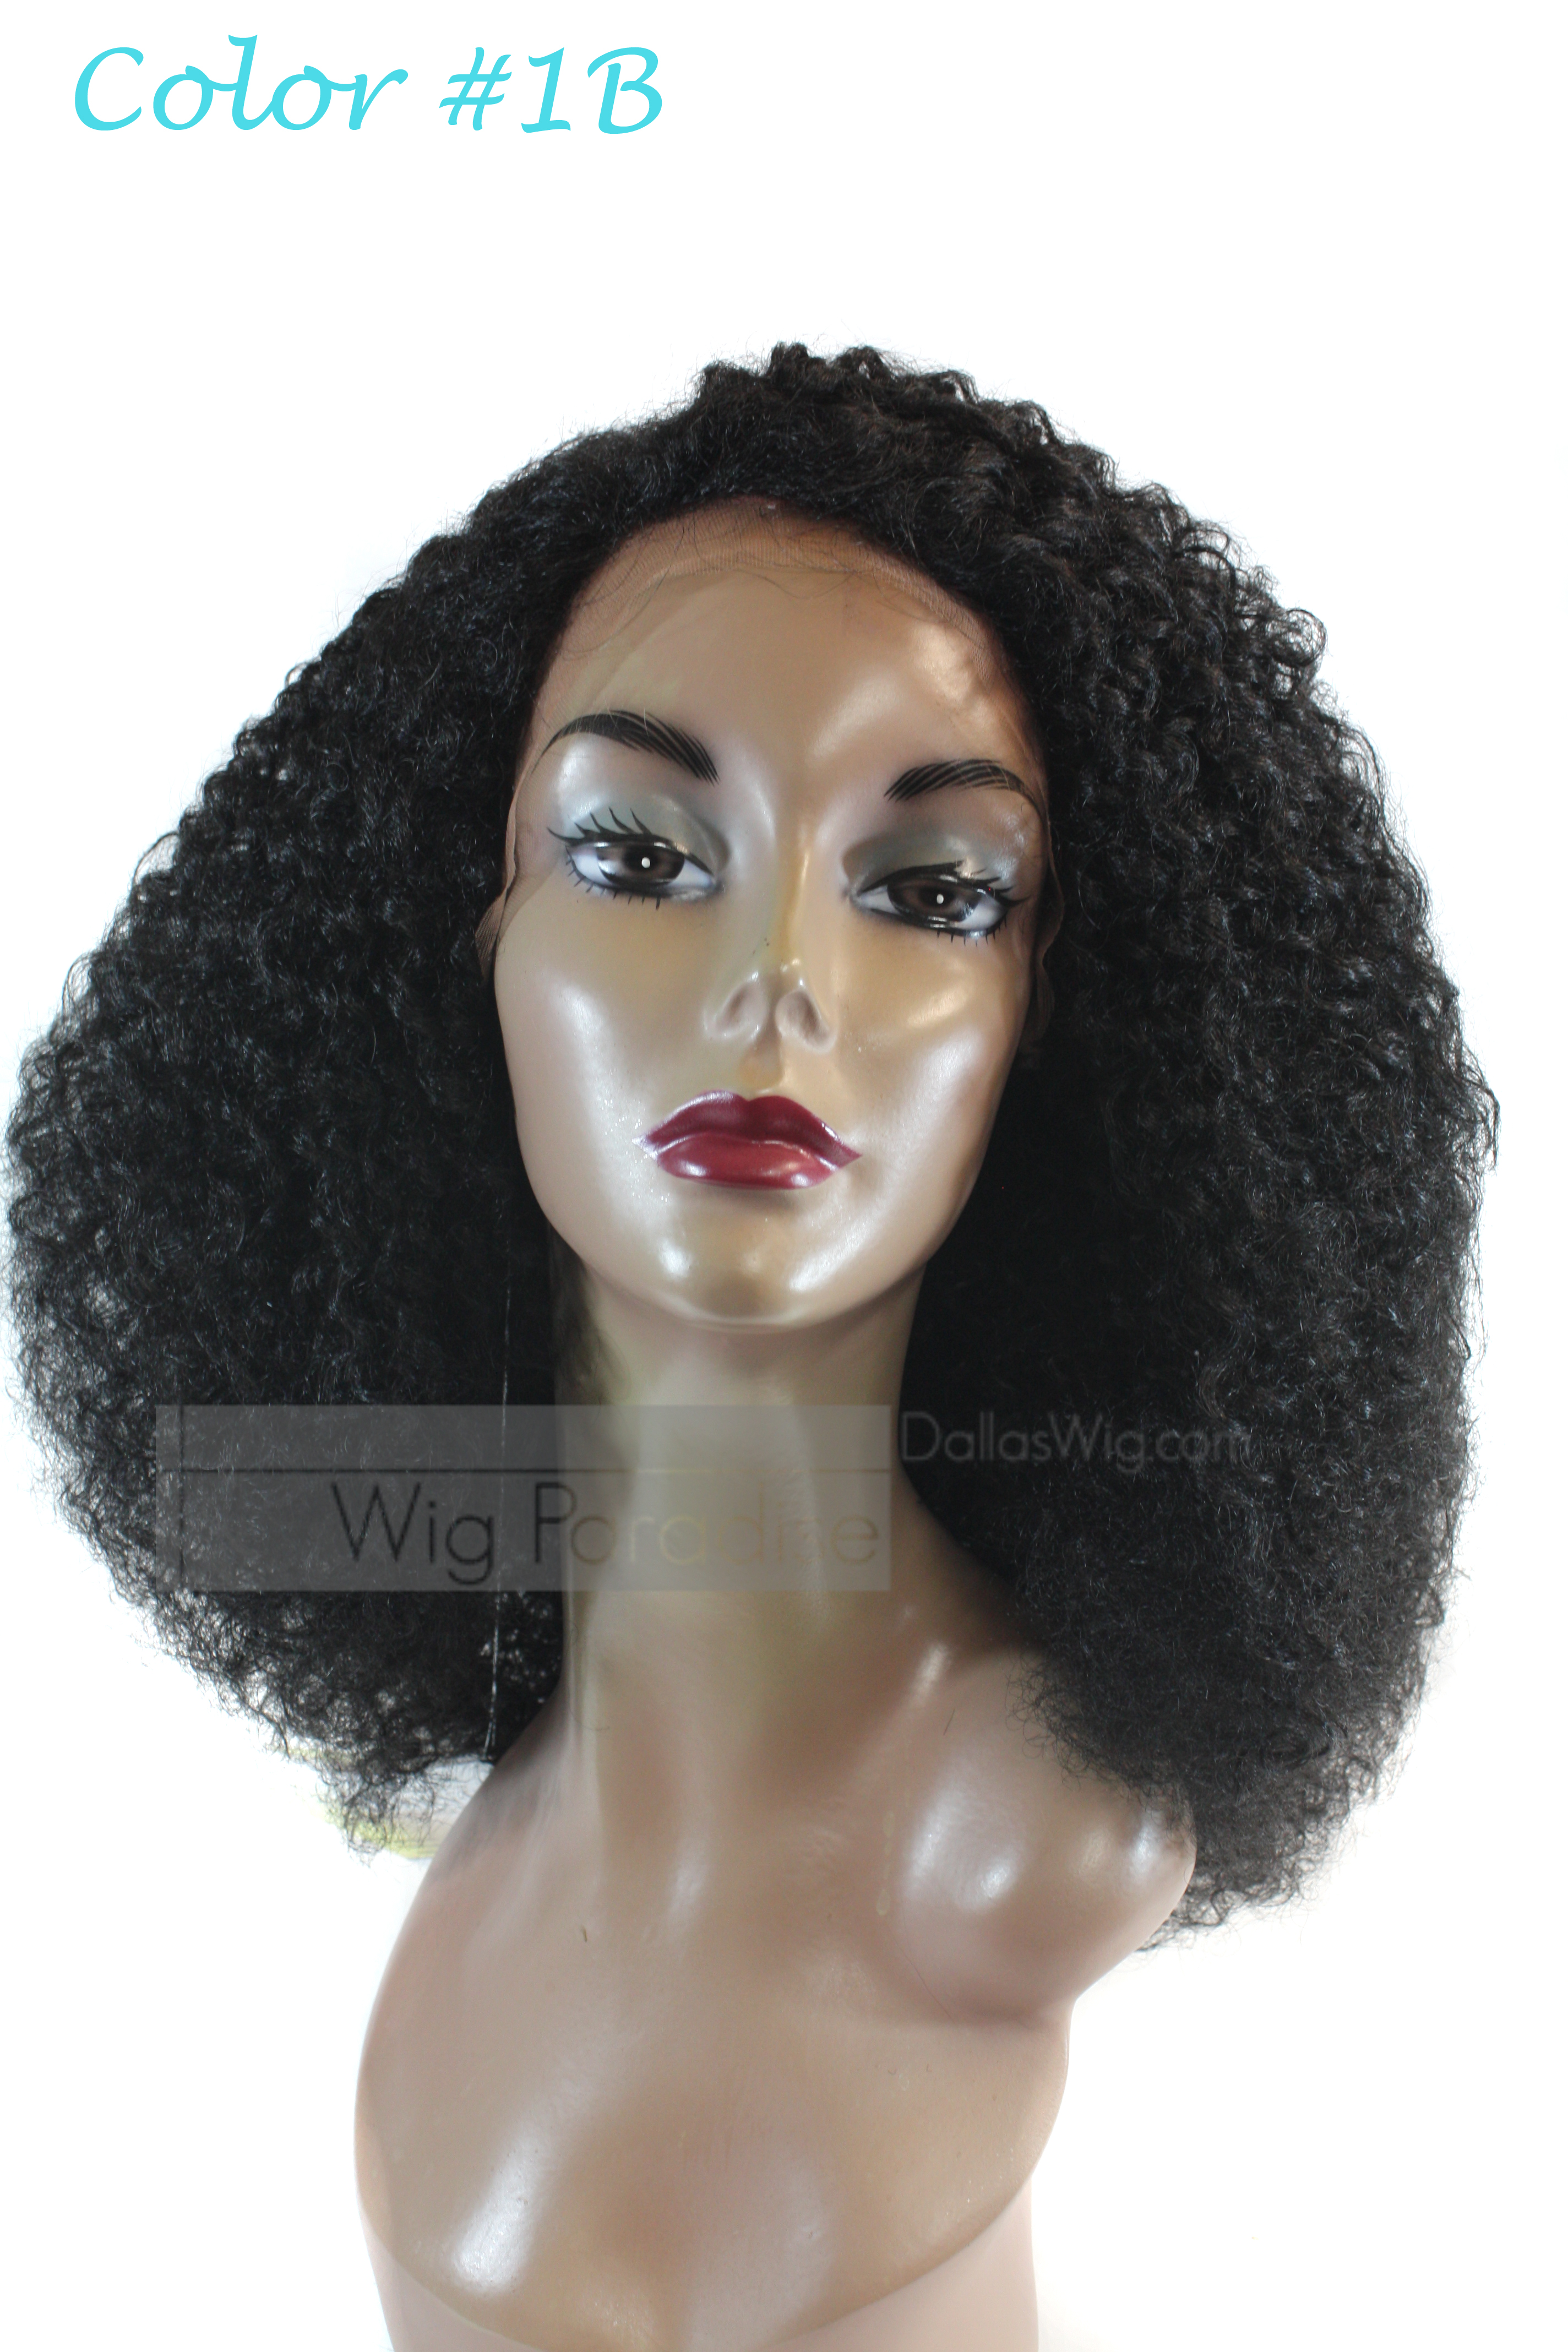 Wigs In Dallas Tx Costume And Wigs